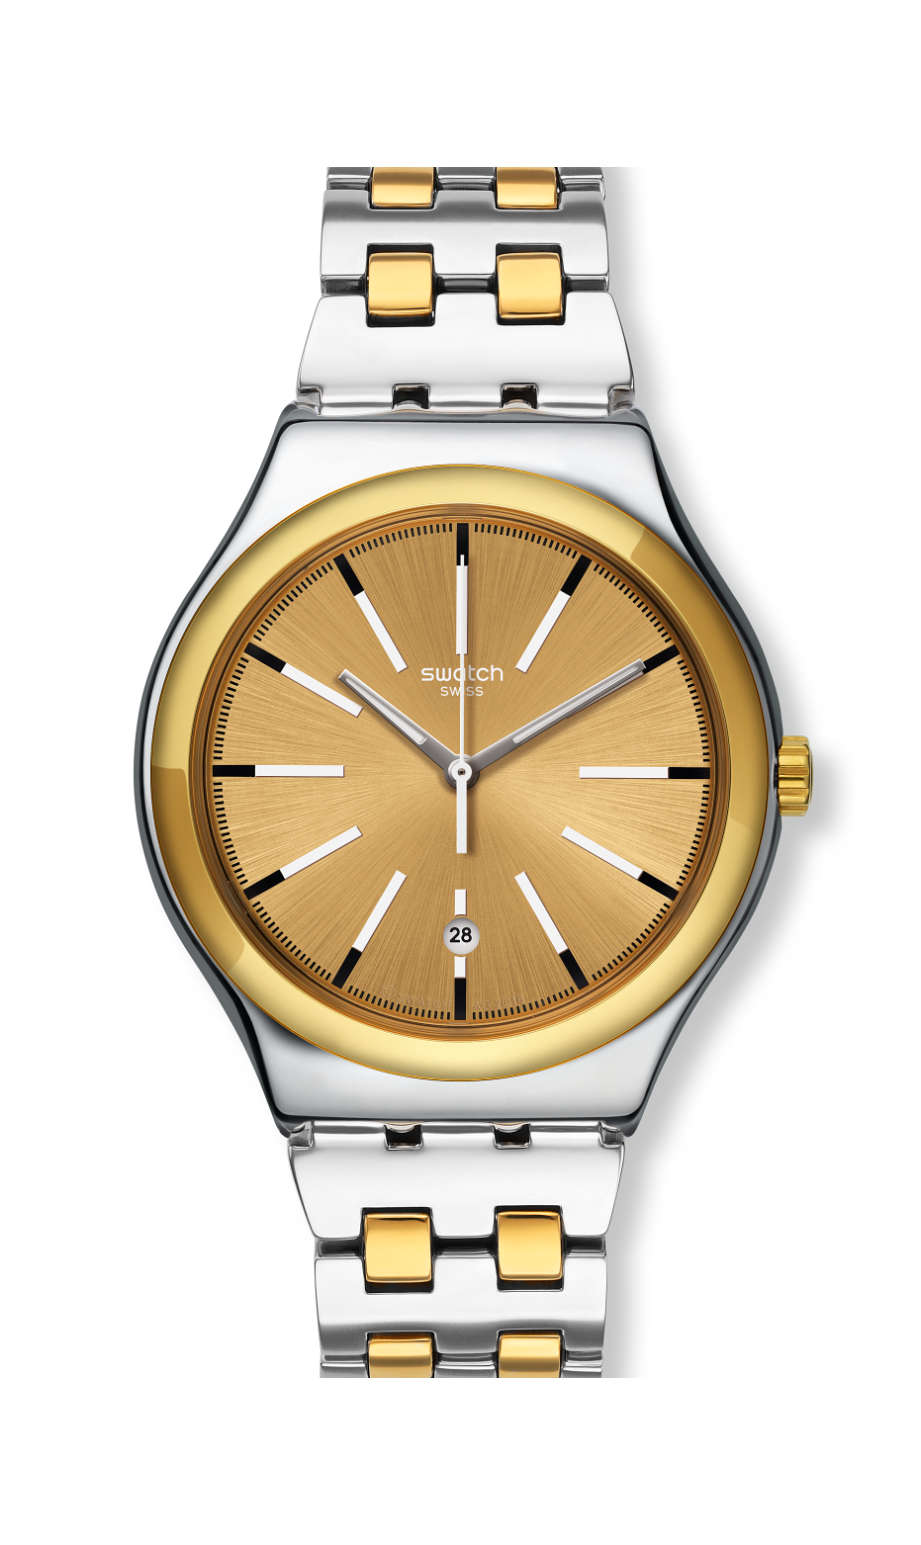 Swatch - TICO-TOCO - 1